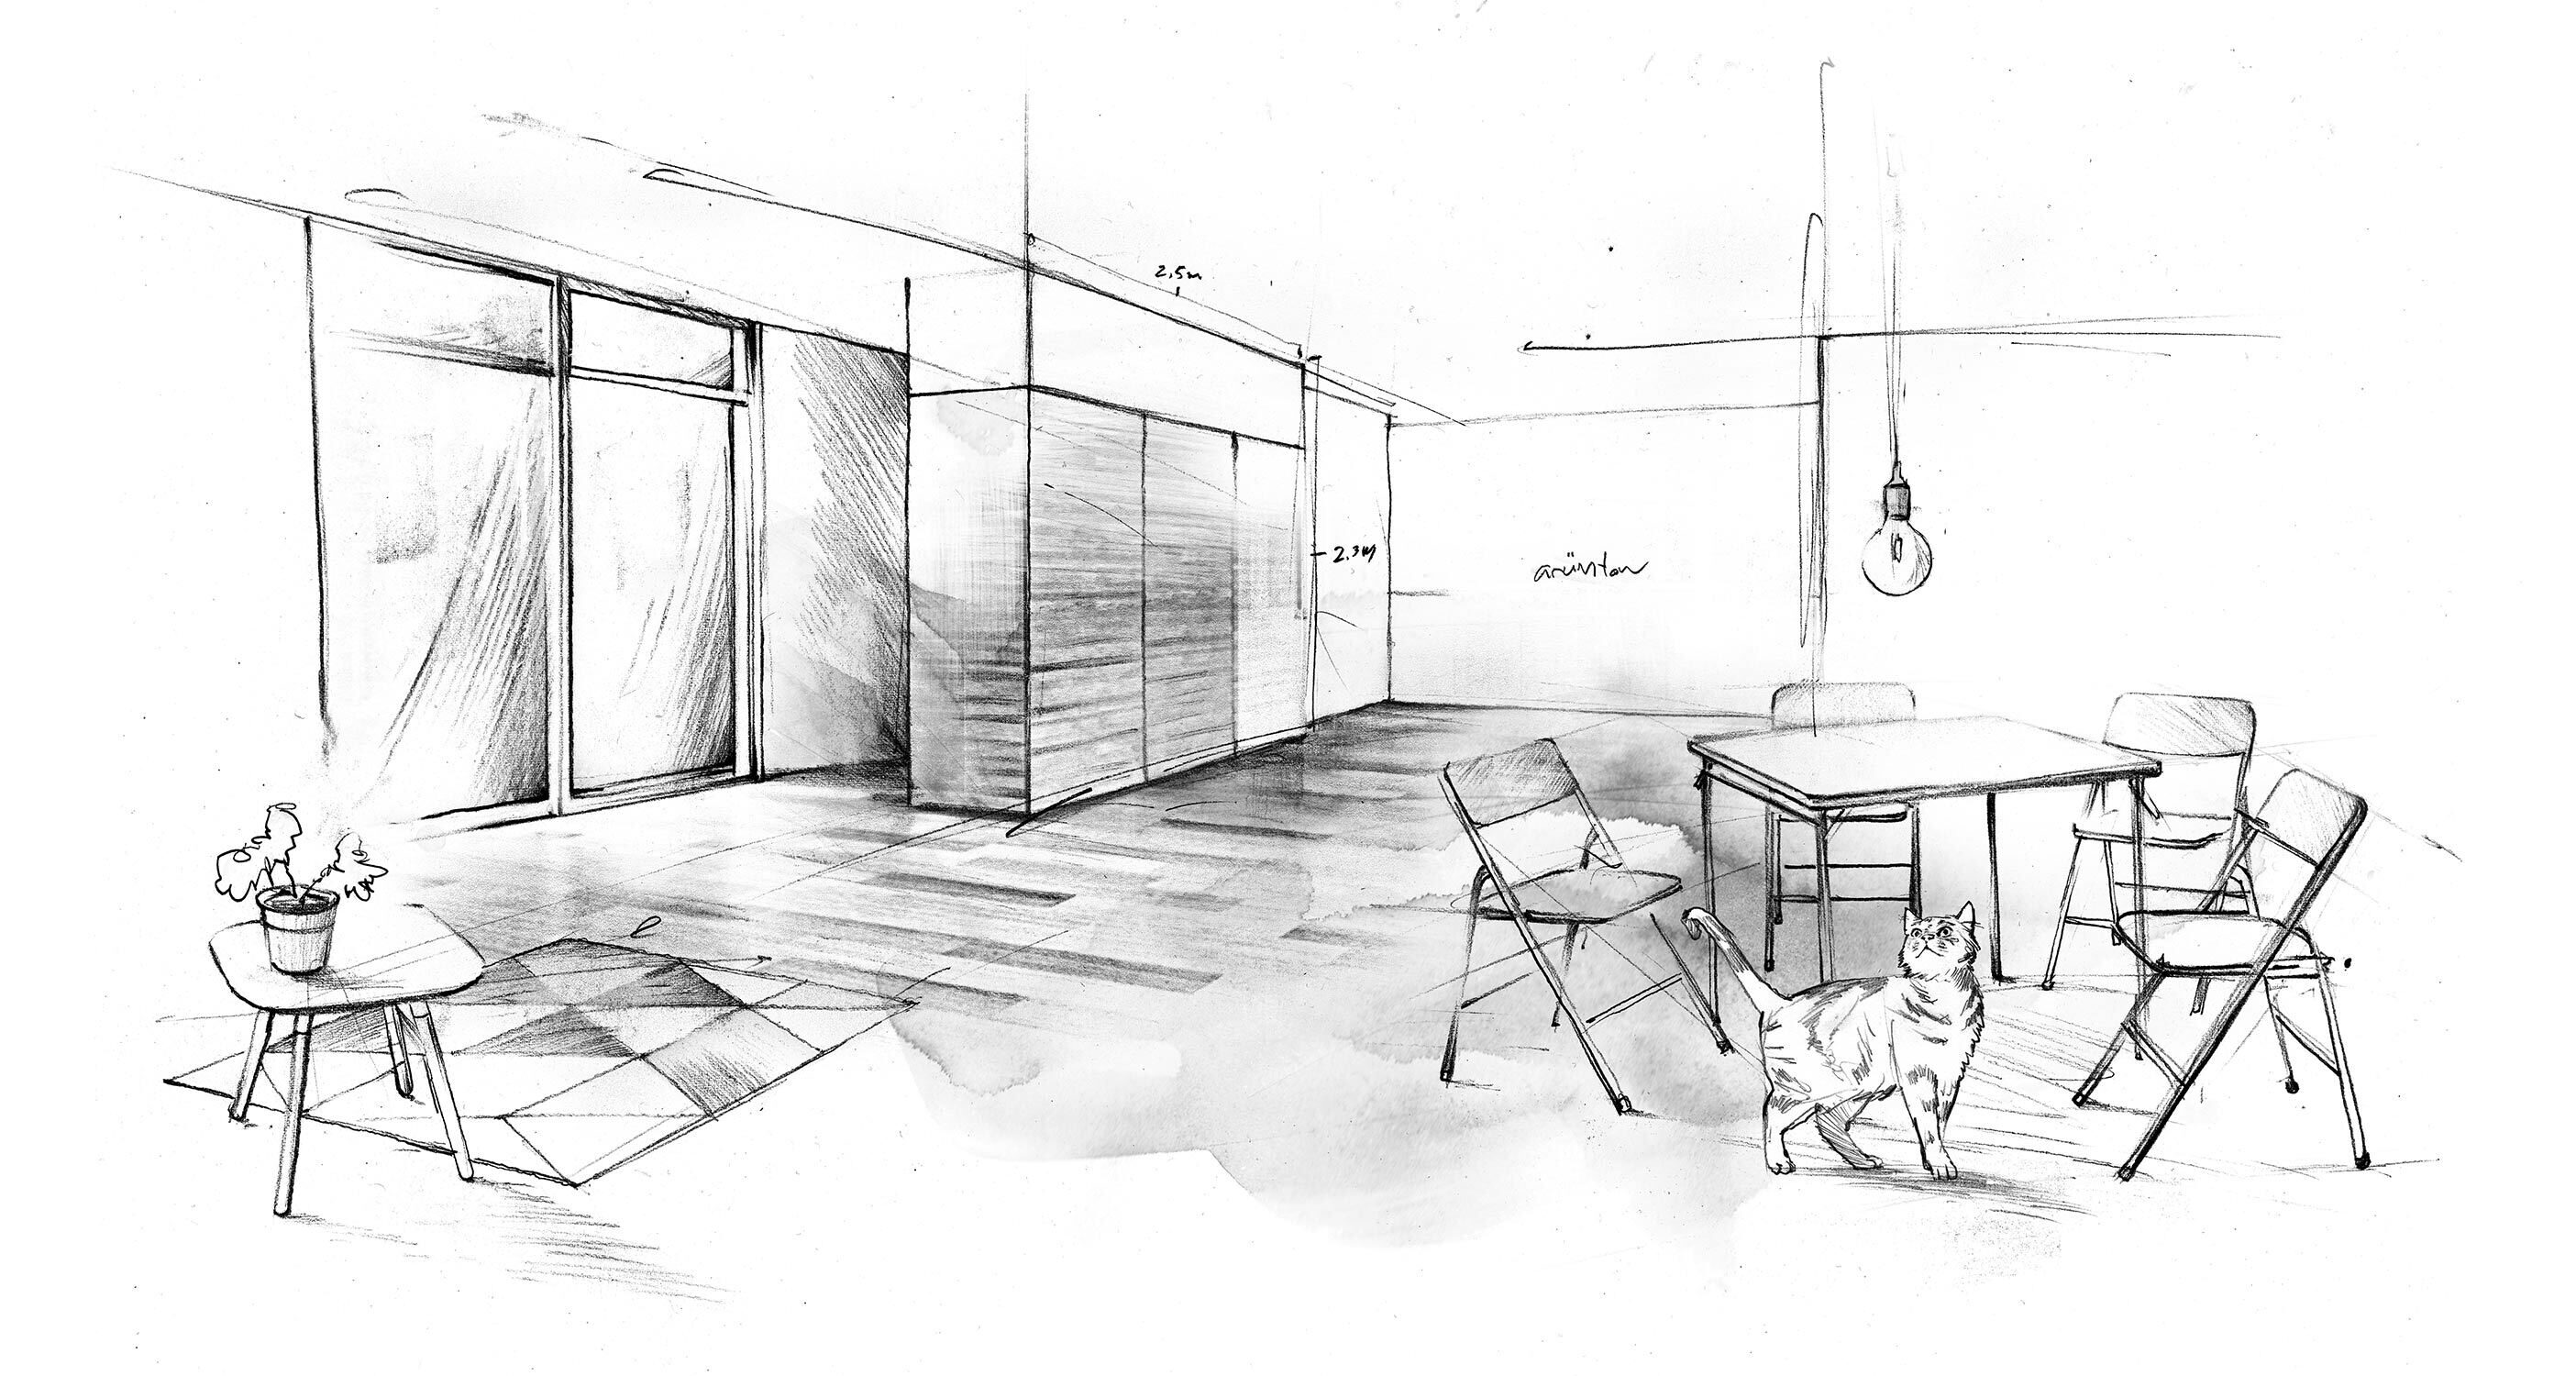 Interior design architecture sketch drawing - Kornel Illustration | Kornel Stadler portfolio